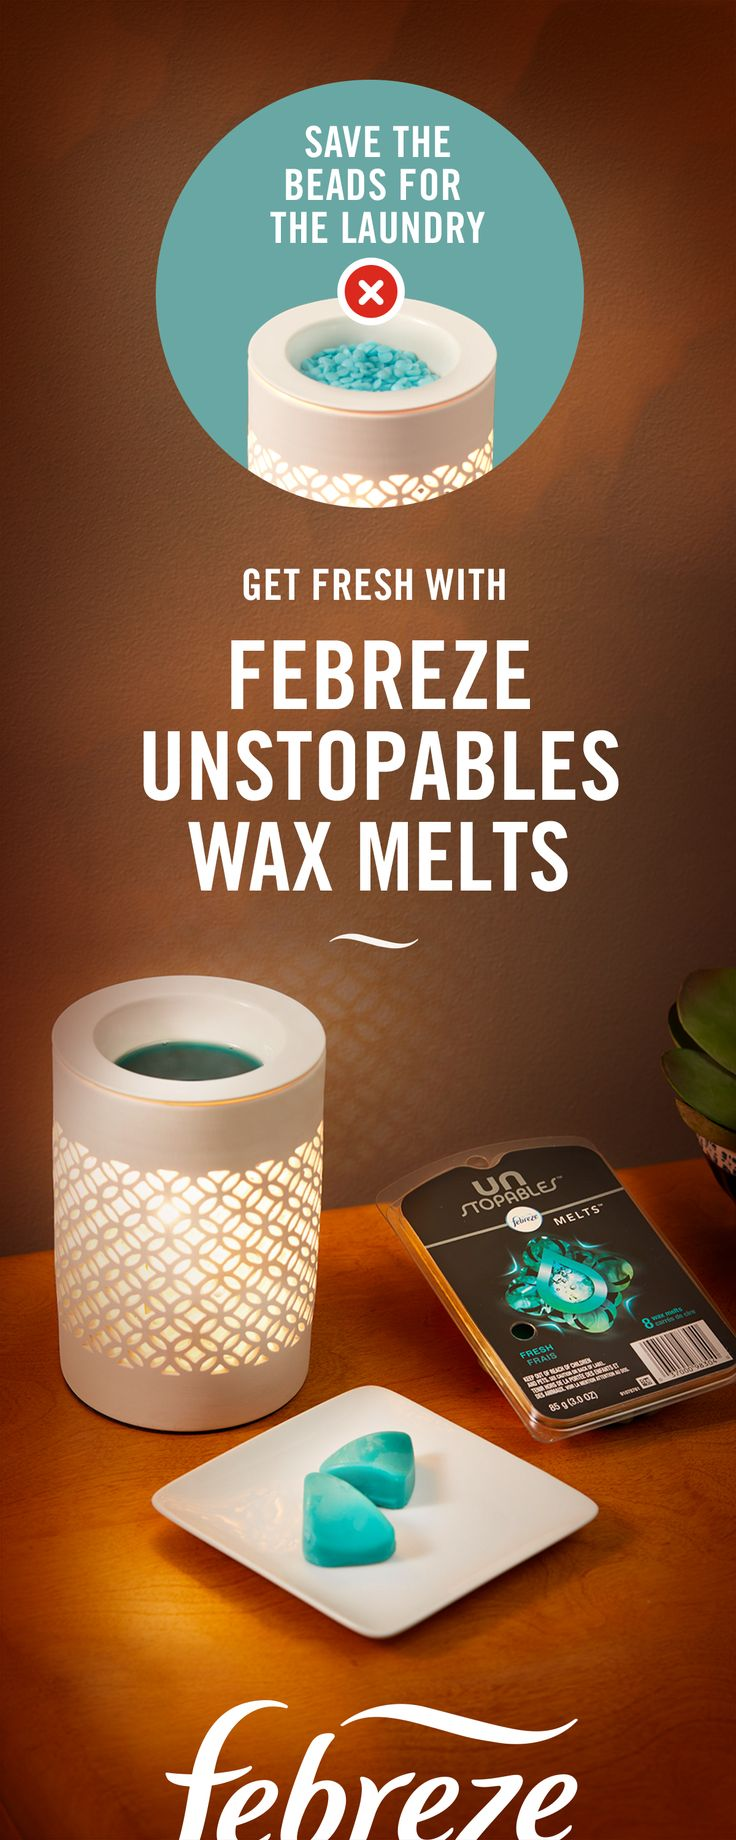 Scent the mood with Febreze Unstopables Wax Melts and revel in its amazingly fre…